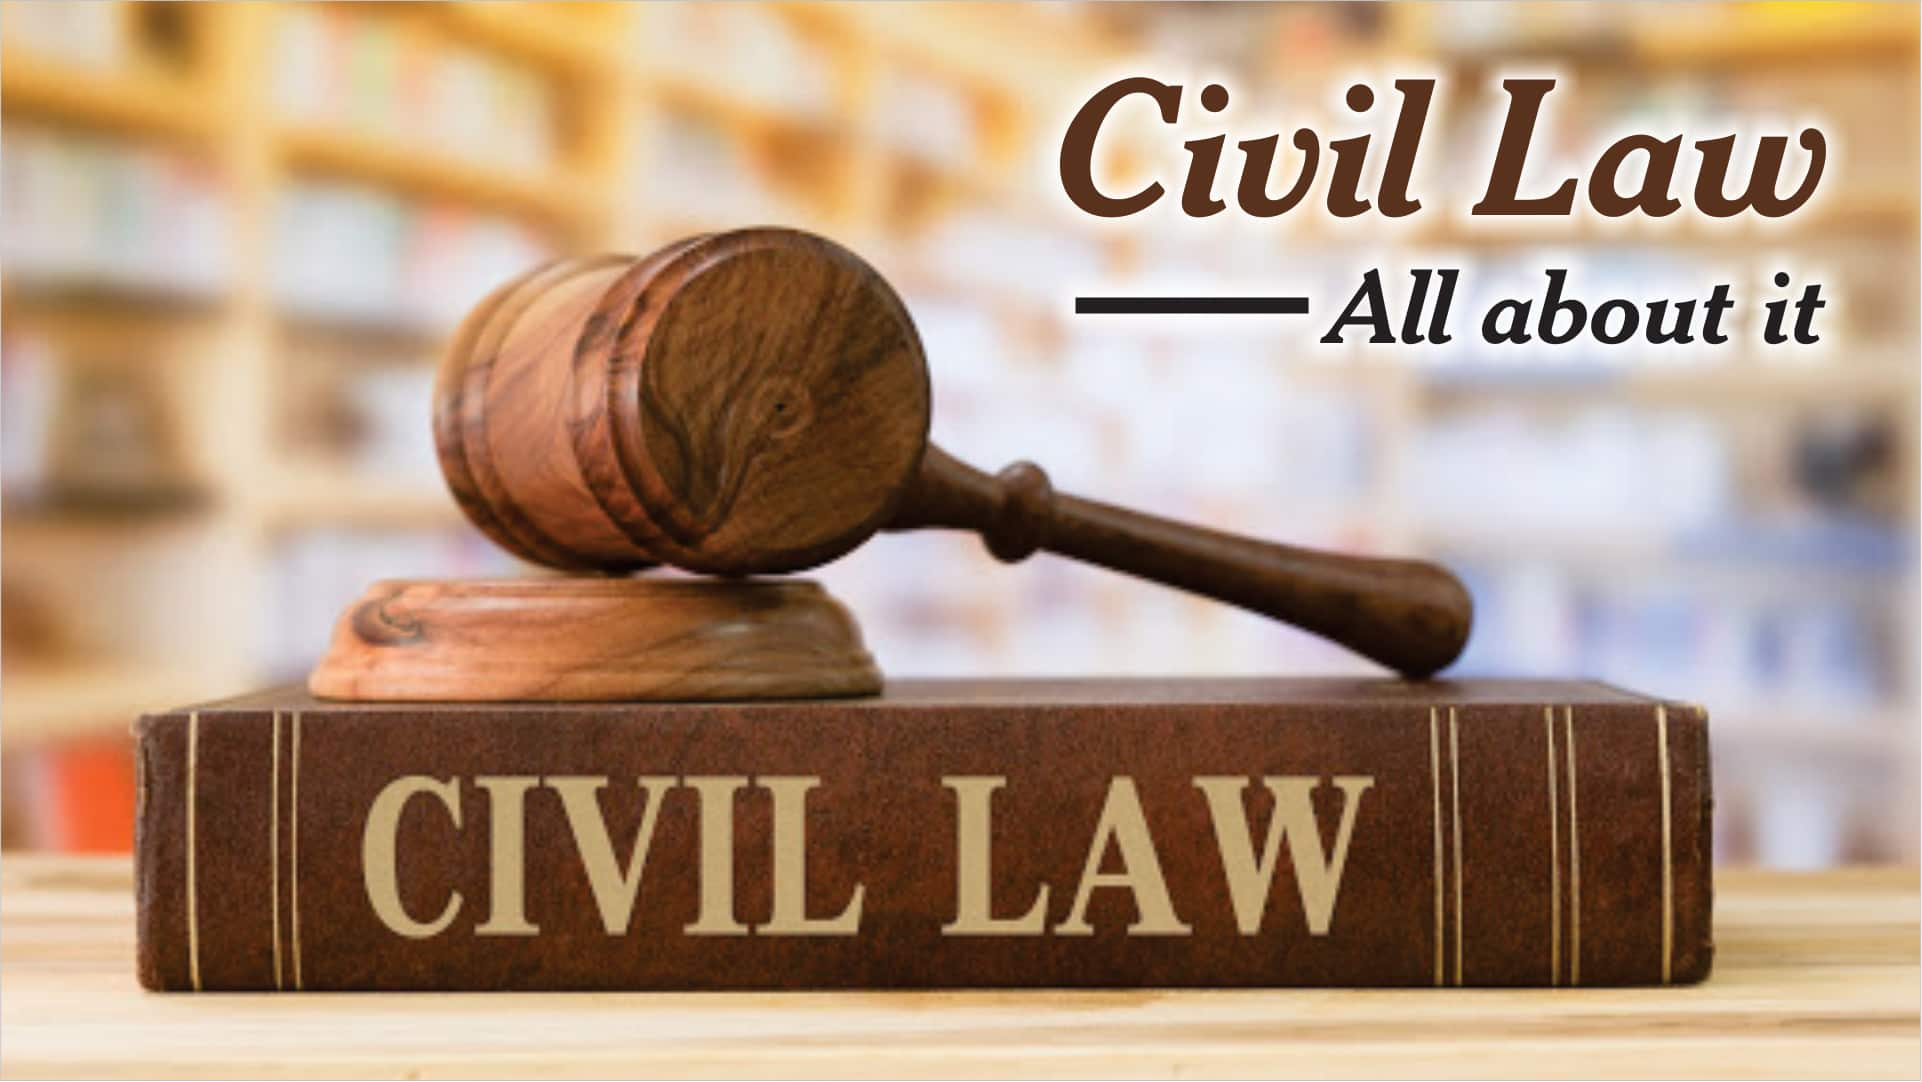 THE DEVELOPMENT OF CIVIL LAW SYSTEMS